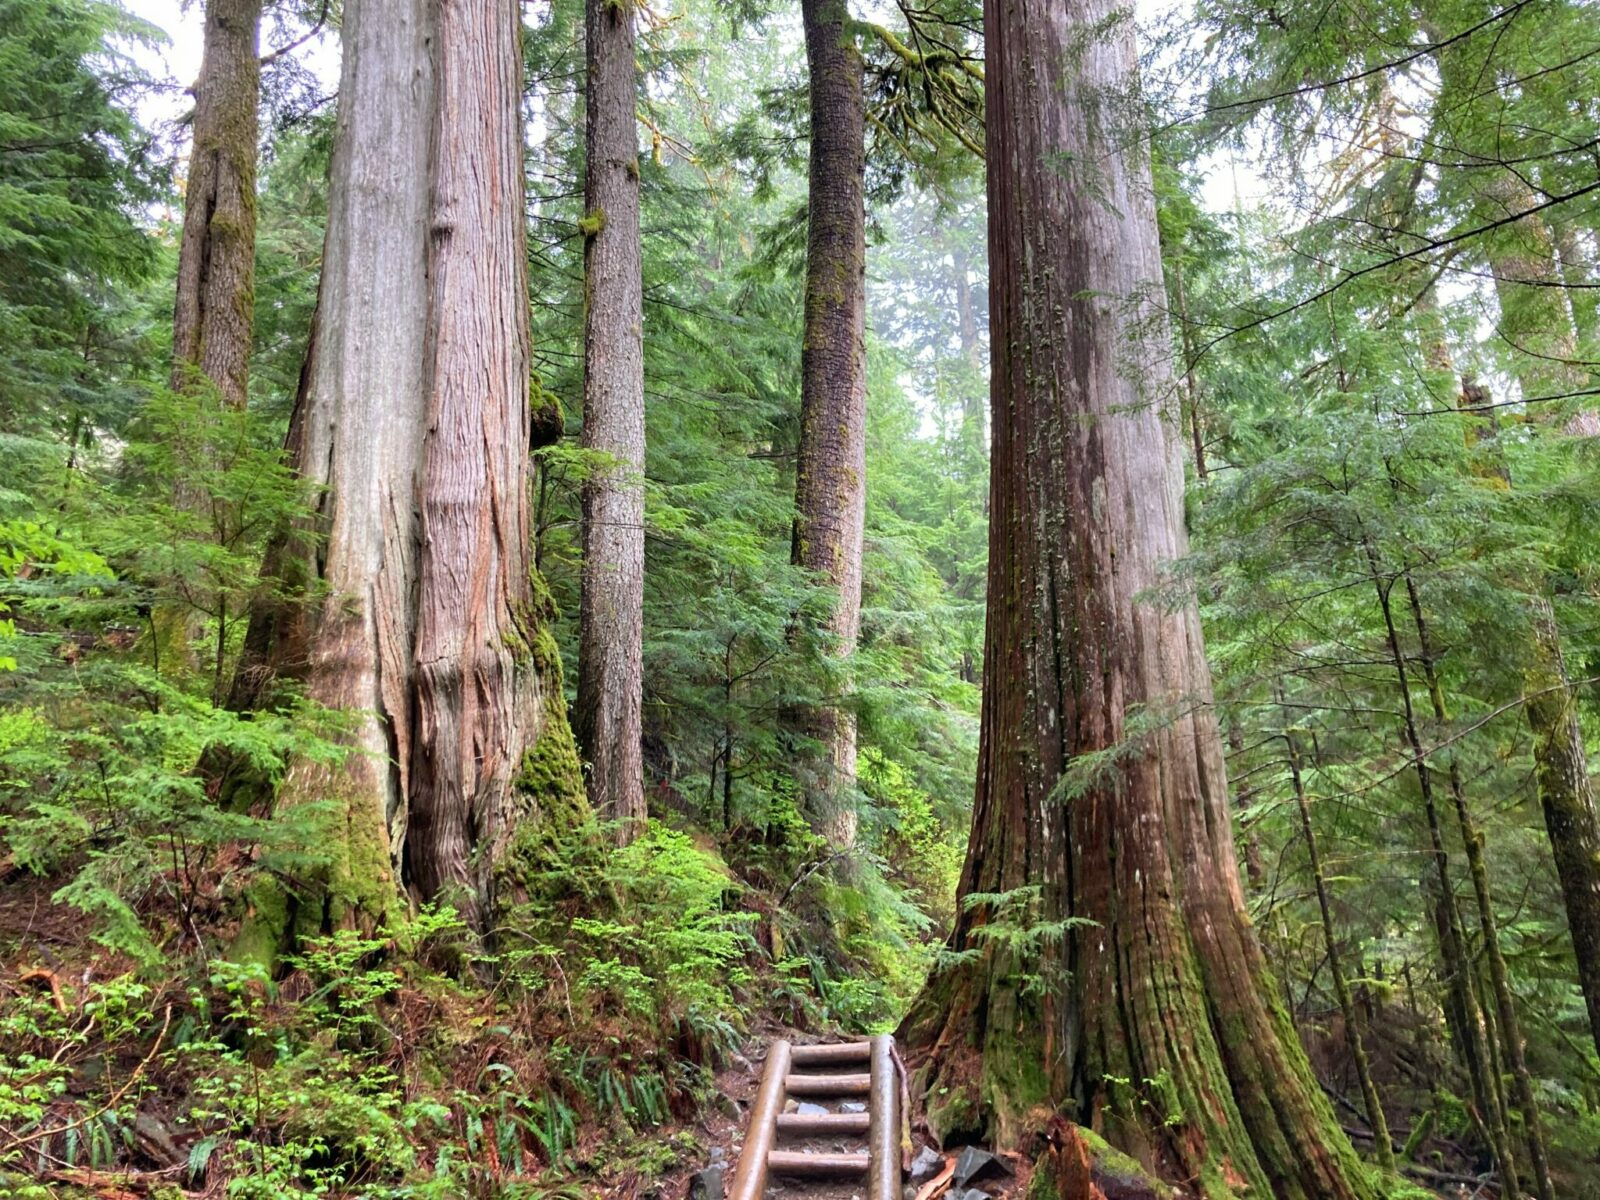 Two old growth cedar trees on either side of the Lake 22 trail. At this spot, the trail goes up a series of log steps and there are more trees all around in the forest. The forest floor has ferns and moss